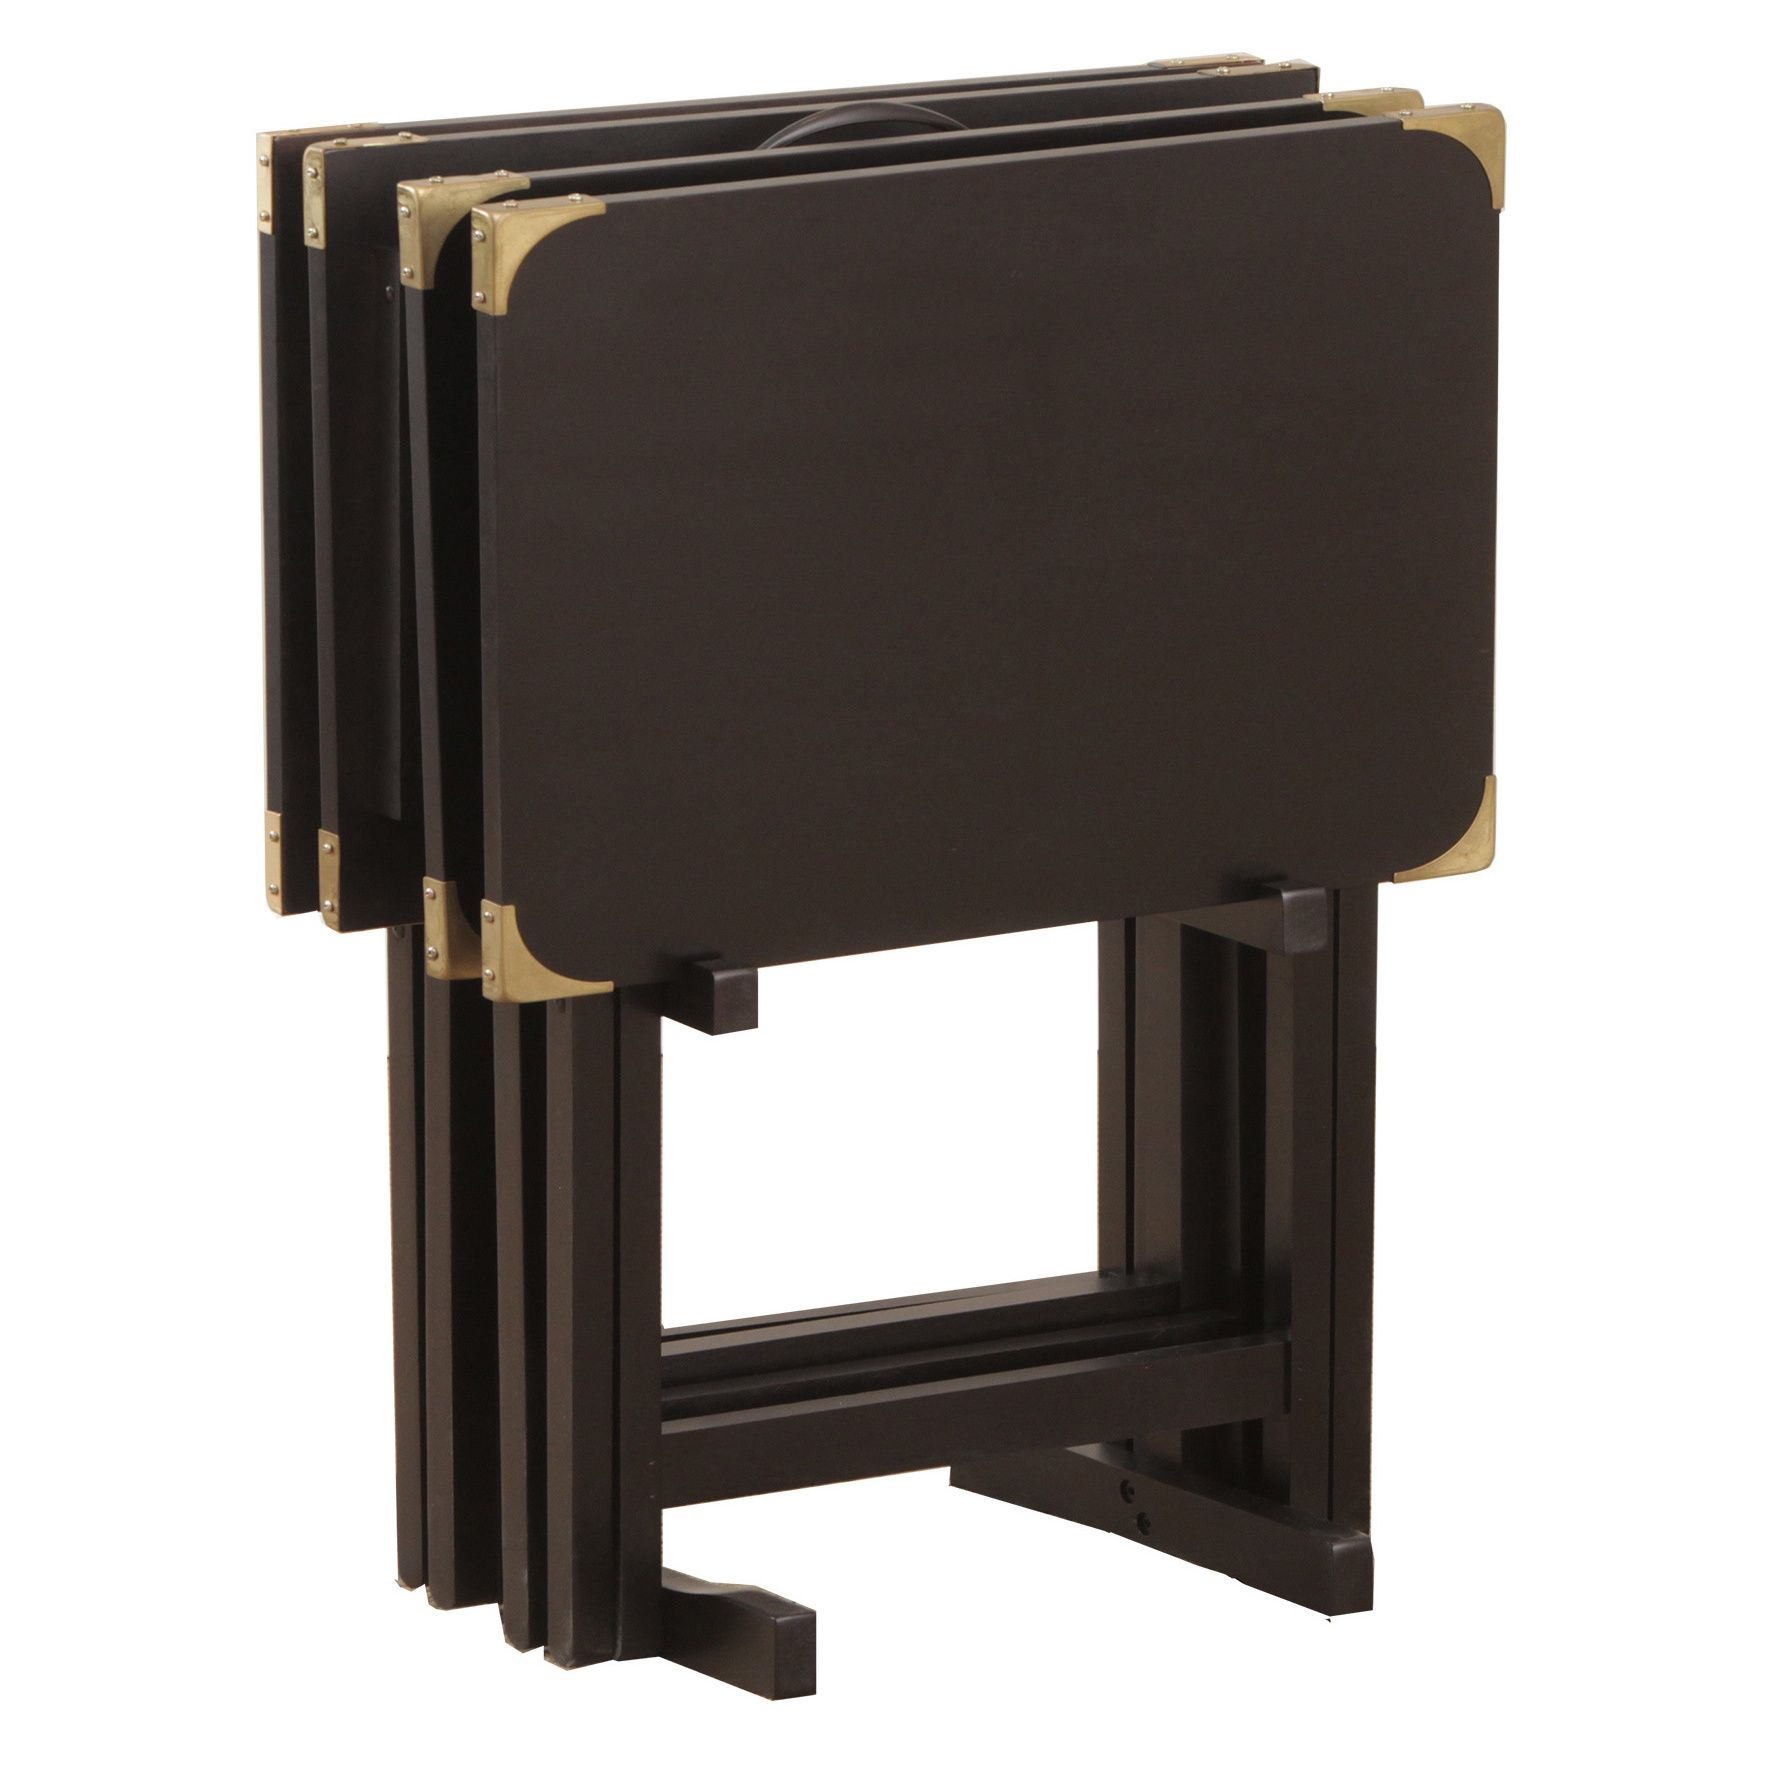 Bombay Outlet Black Tv Tray Set Has Five Pieces Four Tray Tables